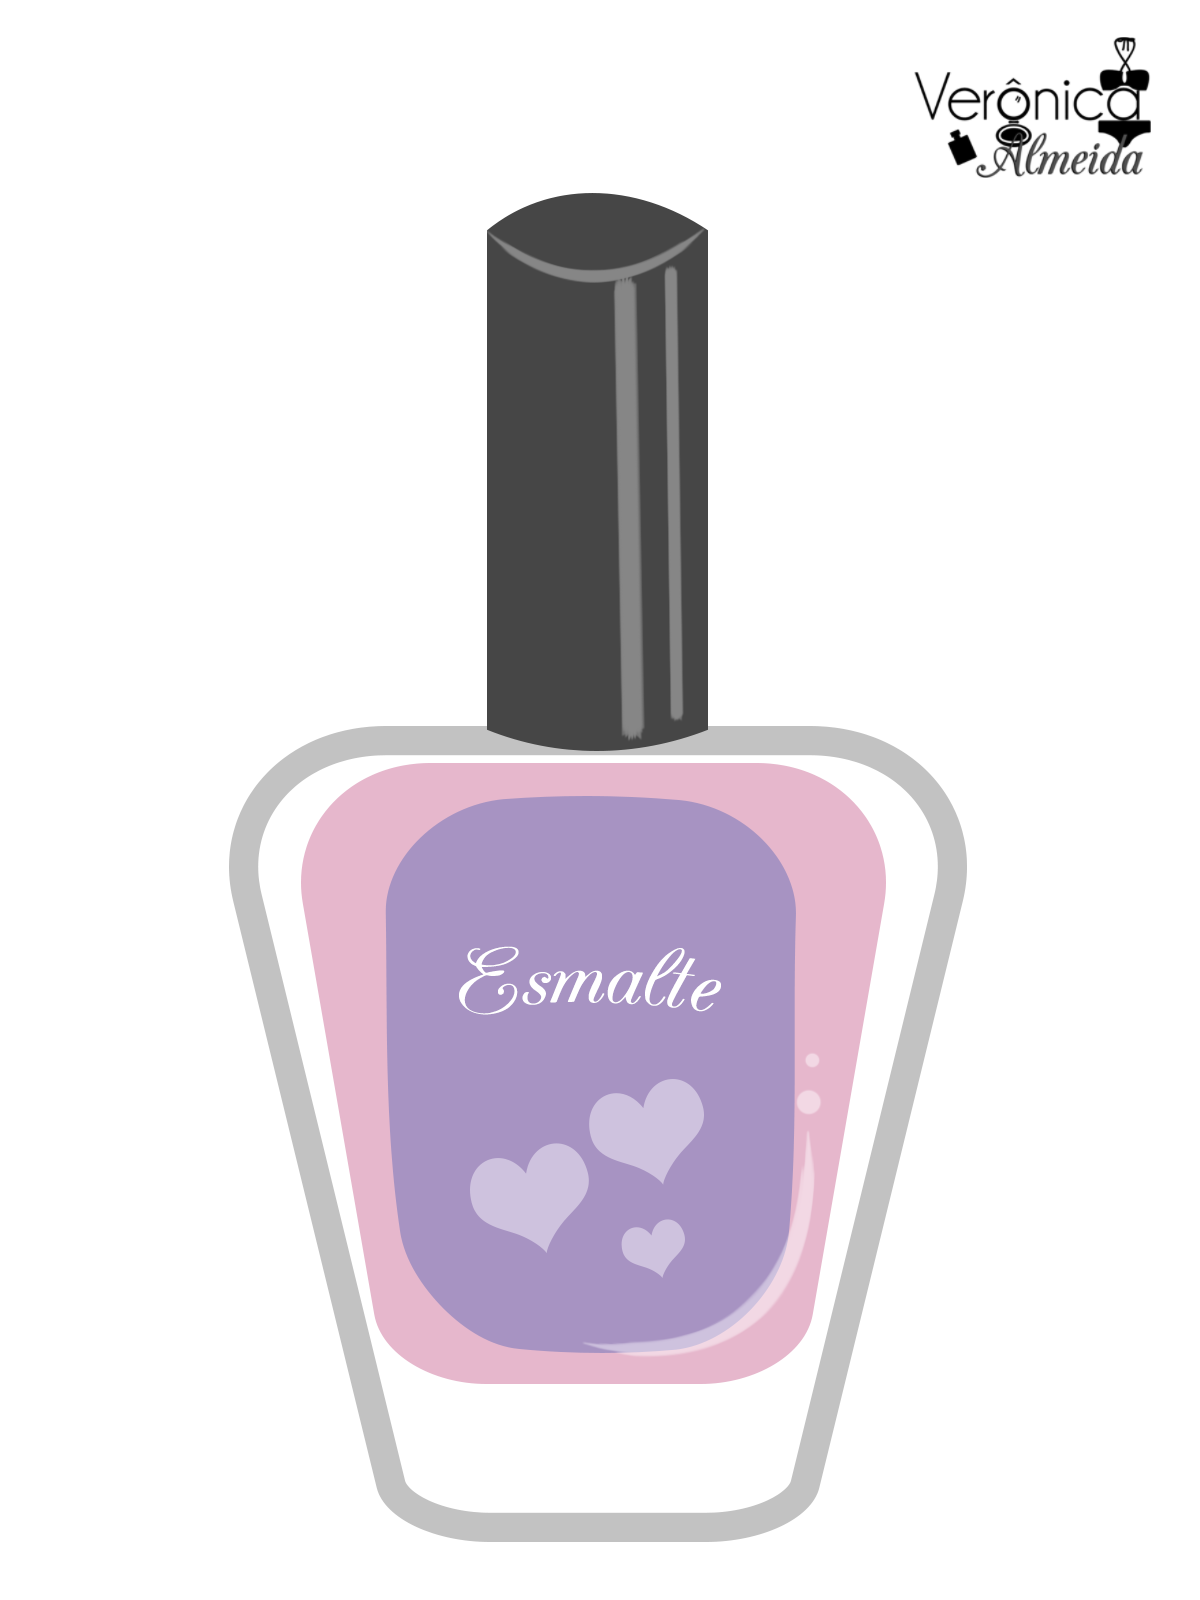 Related image make up. Perfume clipart chanel no 5